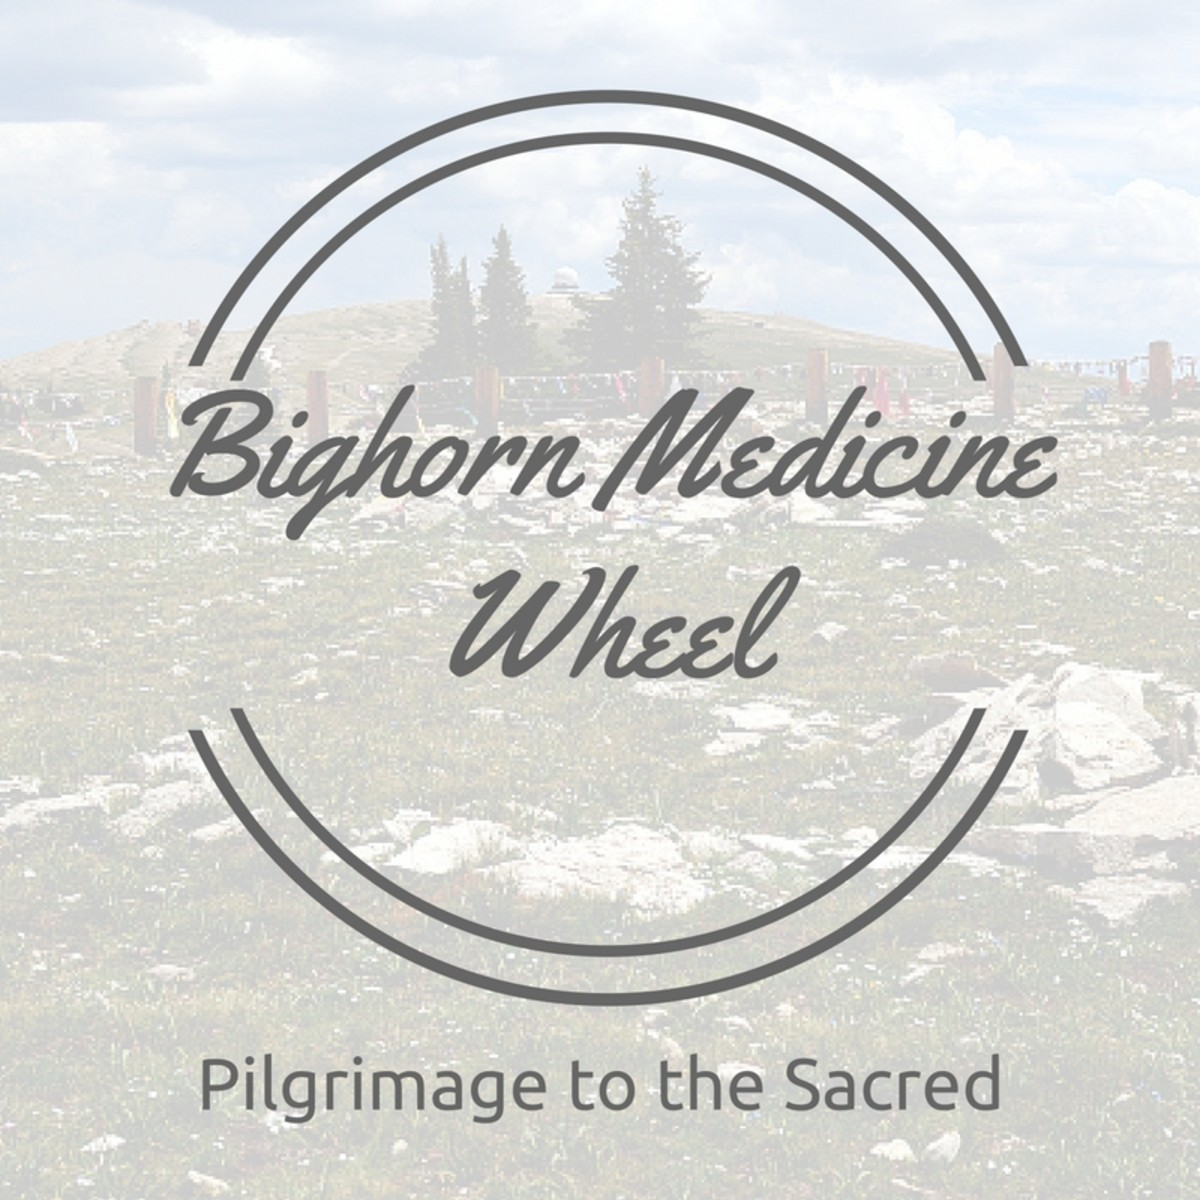 The Magic of Bighorn Medicine Wheel